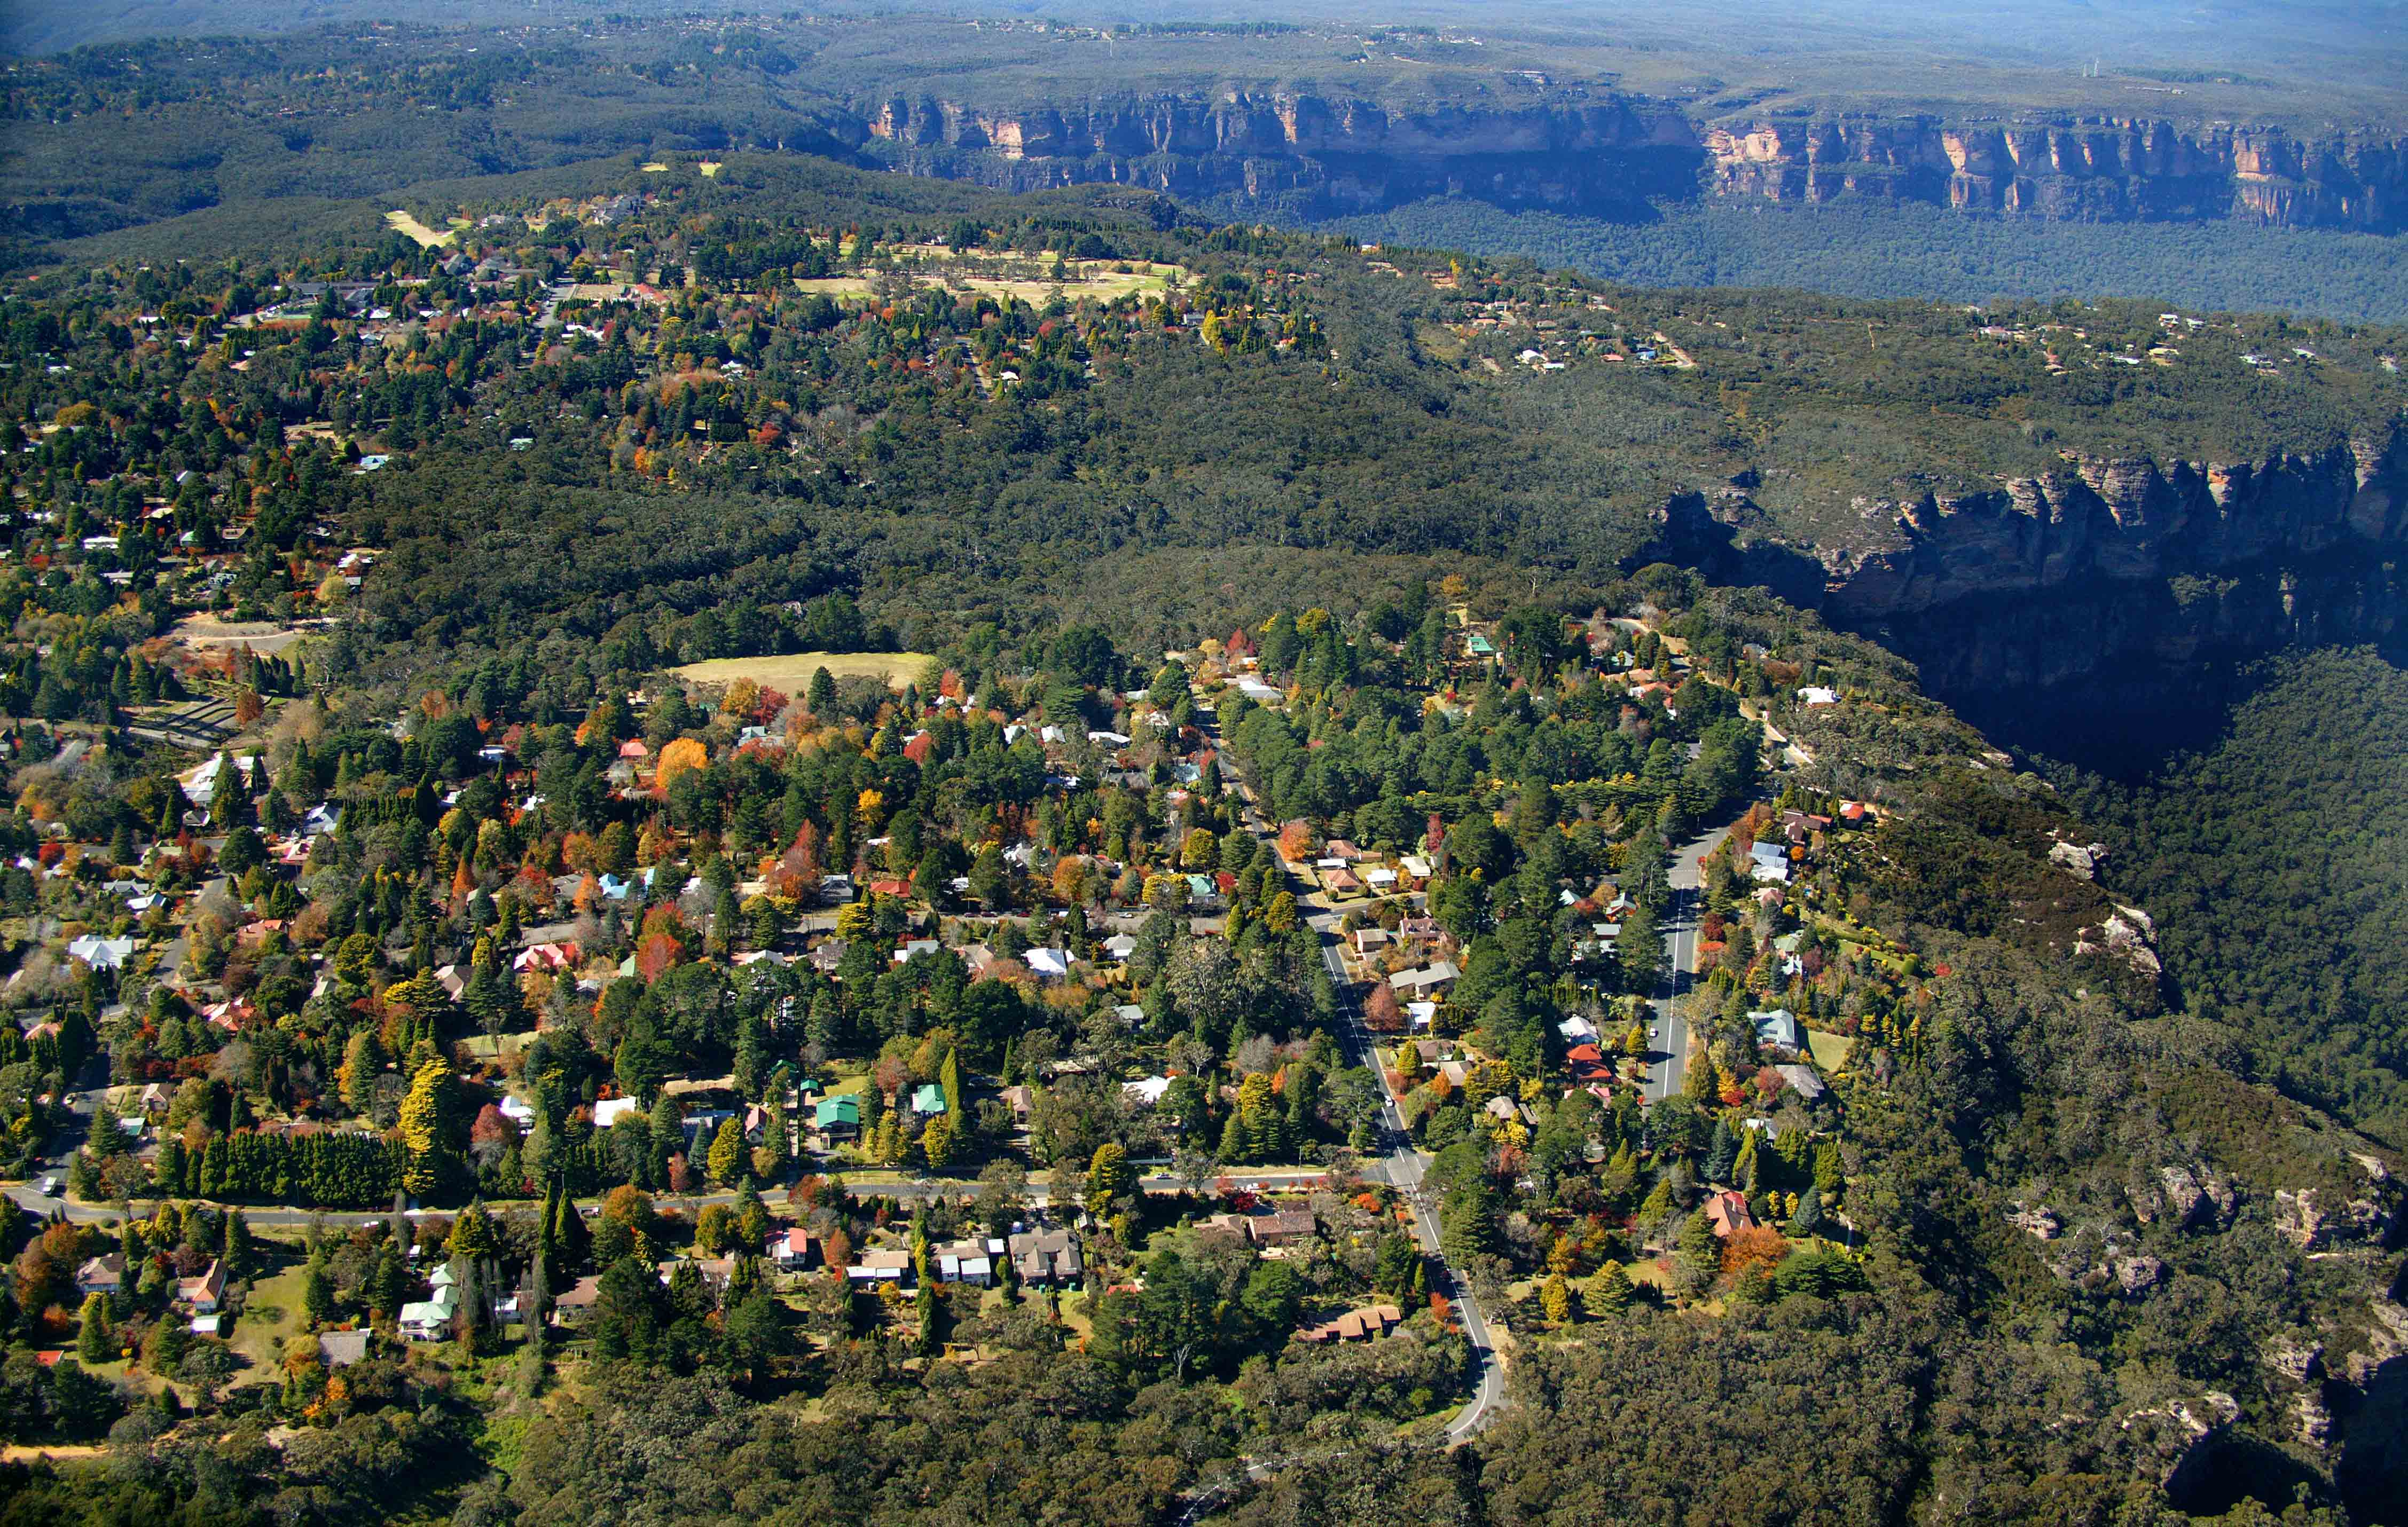 An aerial view of residential homes at Katoomba